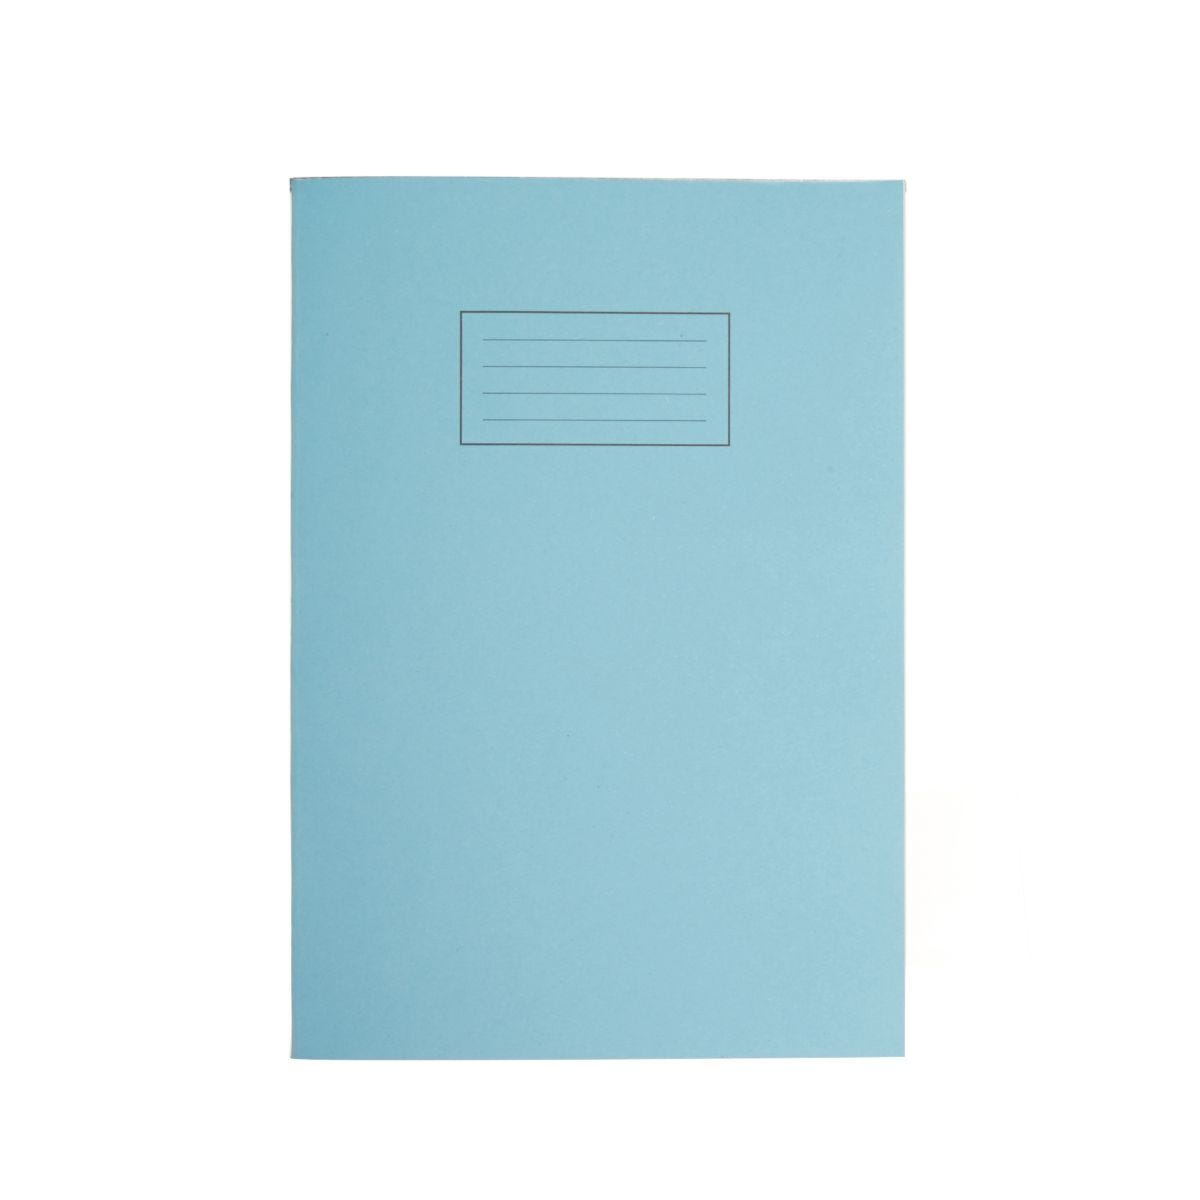 Exercise Book A4 80 Page Plain 75gsm